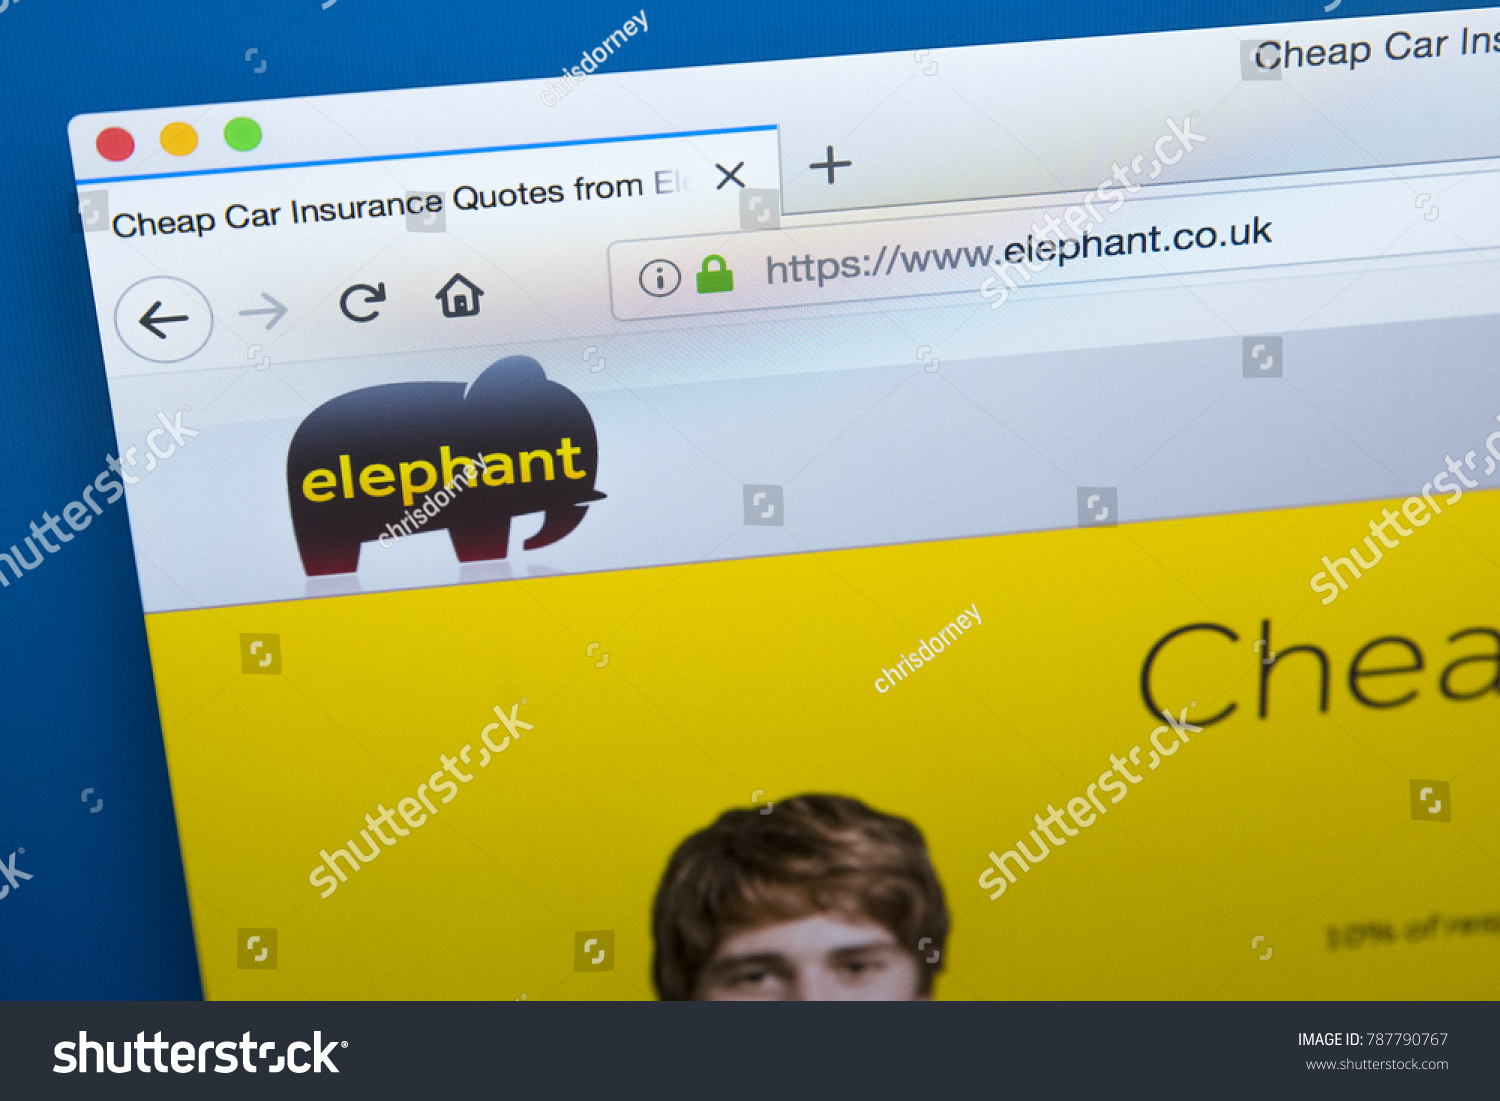 Elephant Auto Insurance Quote London Uk January 4Th 2018 Homepage Stock Photo 787790767